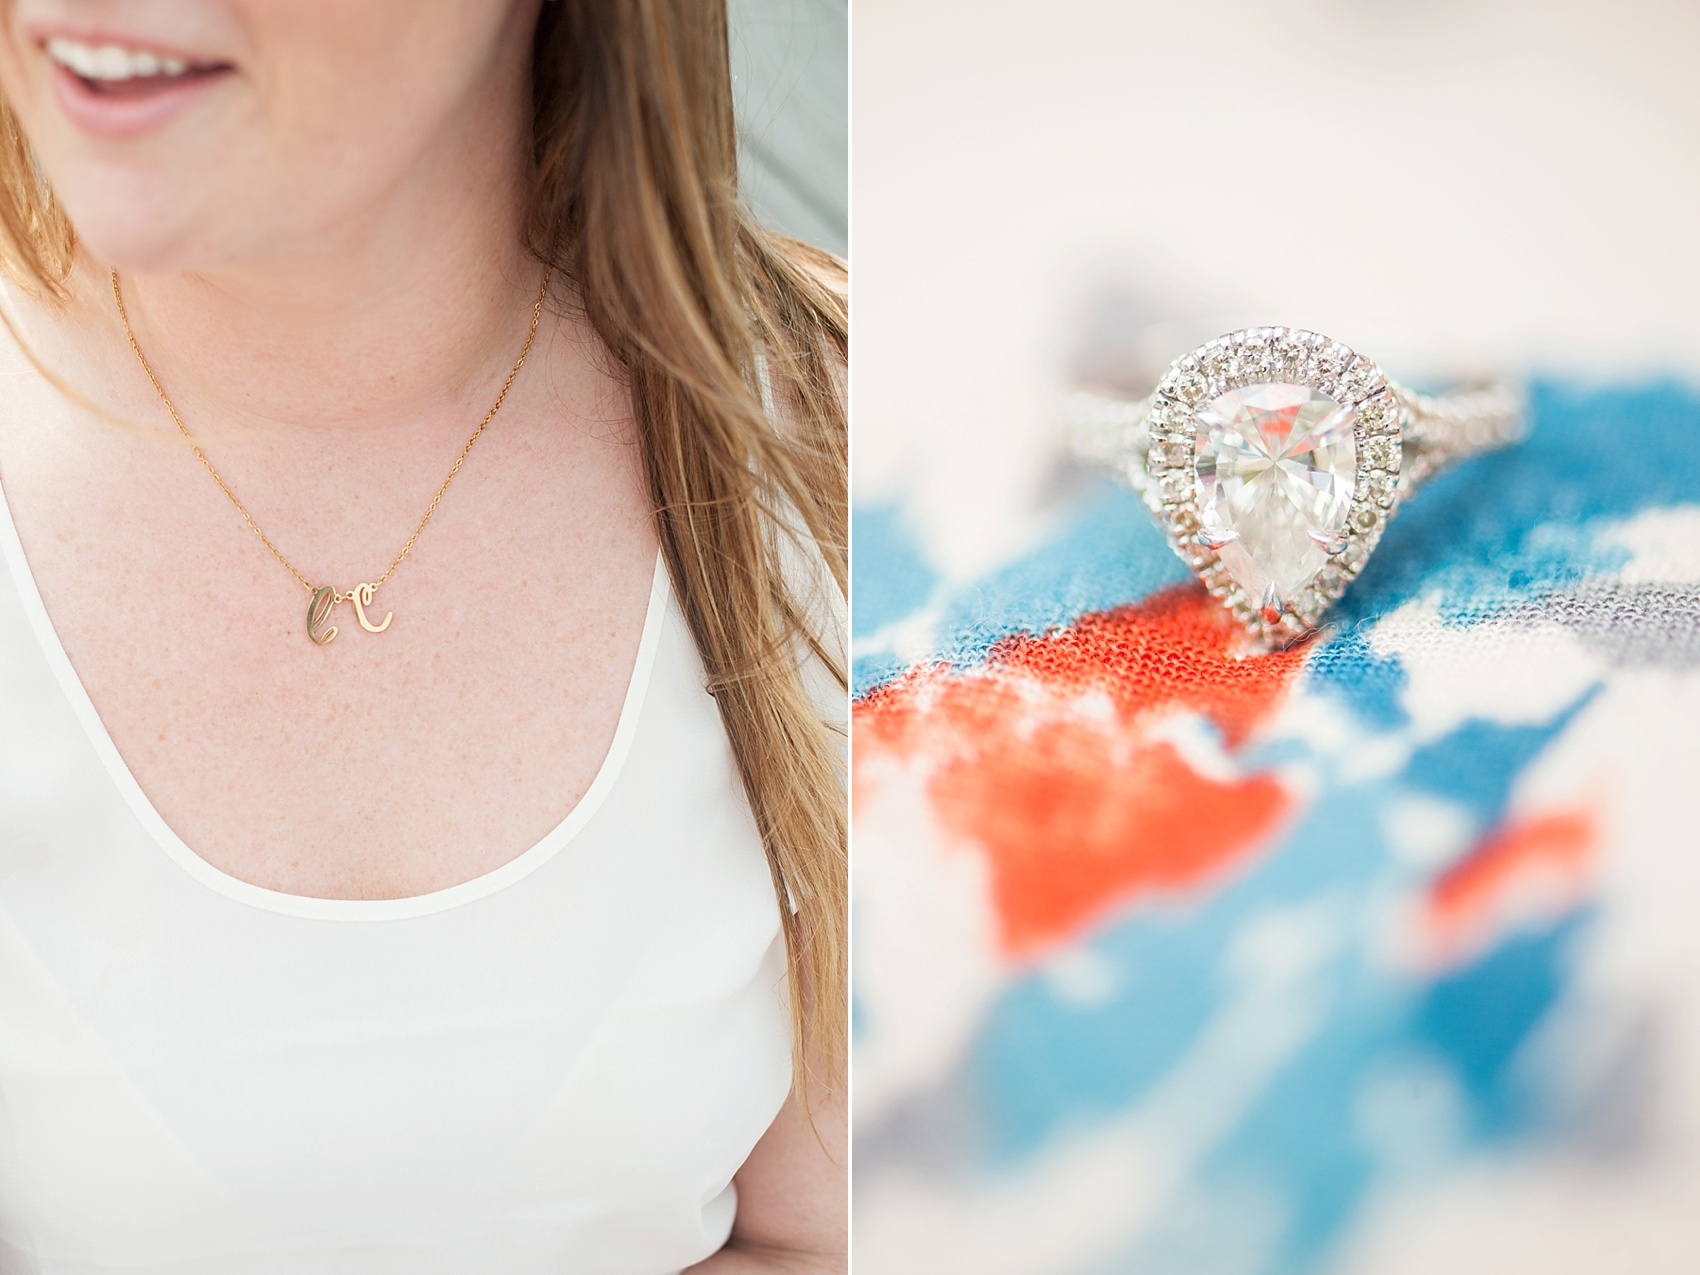 Hoboken engagement photos by Mikkel Paige Photography, NYC and NJ wedding photographer. Teardrop wedding ring and initial necklace.